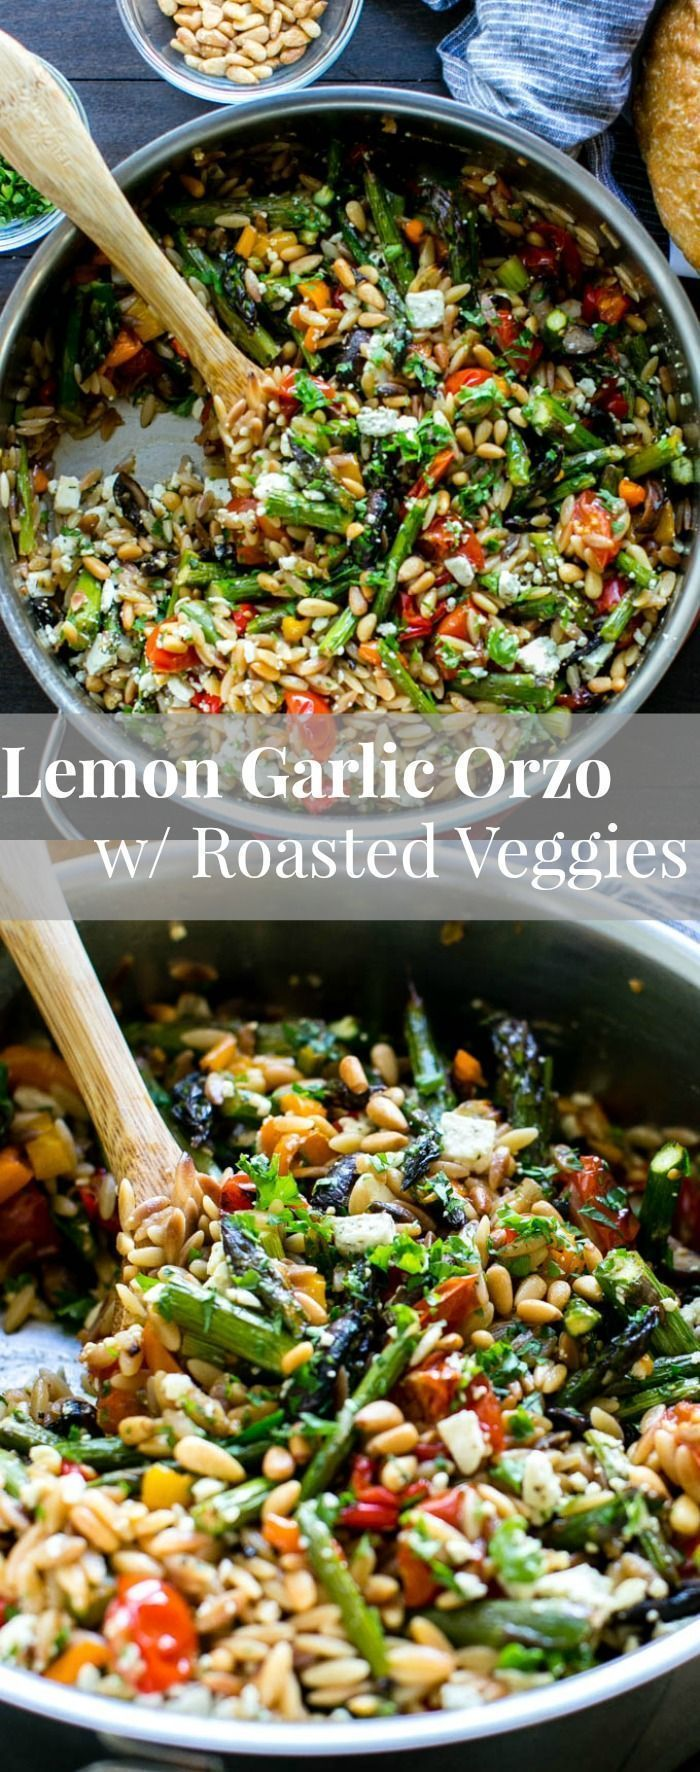 Lemon Garlic Orzo with Roasted Vegetables, feta and pine nuts is packed with texture and flavor. Delicious served warm or chilled and makes fabulous leftovers or addition to a picnic, or pot luck. Vegetarian. | Pasta | Salad | Picnic